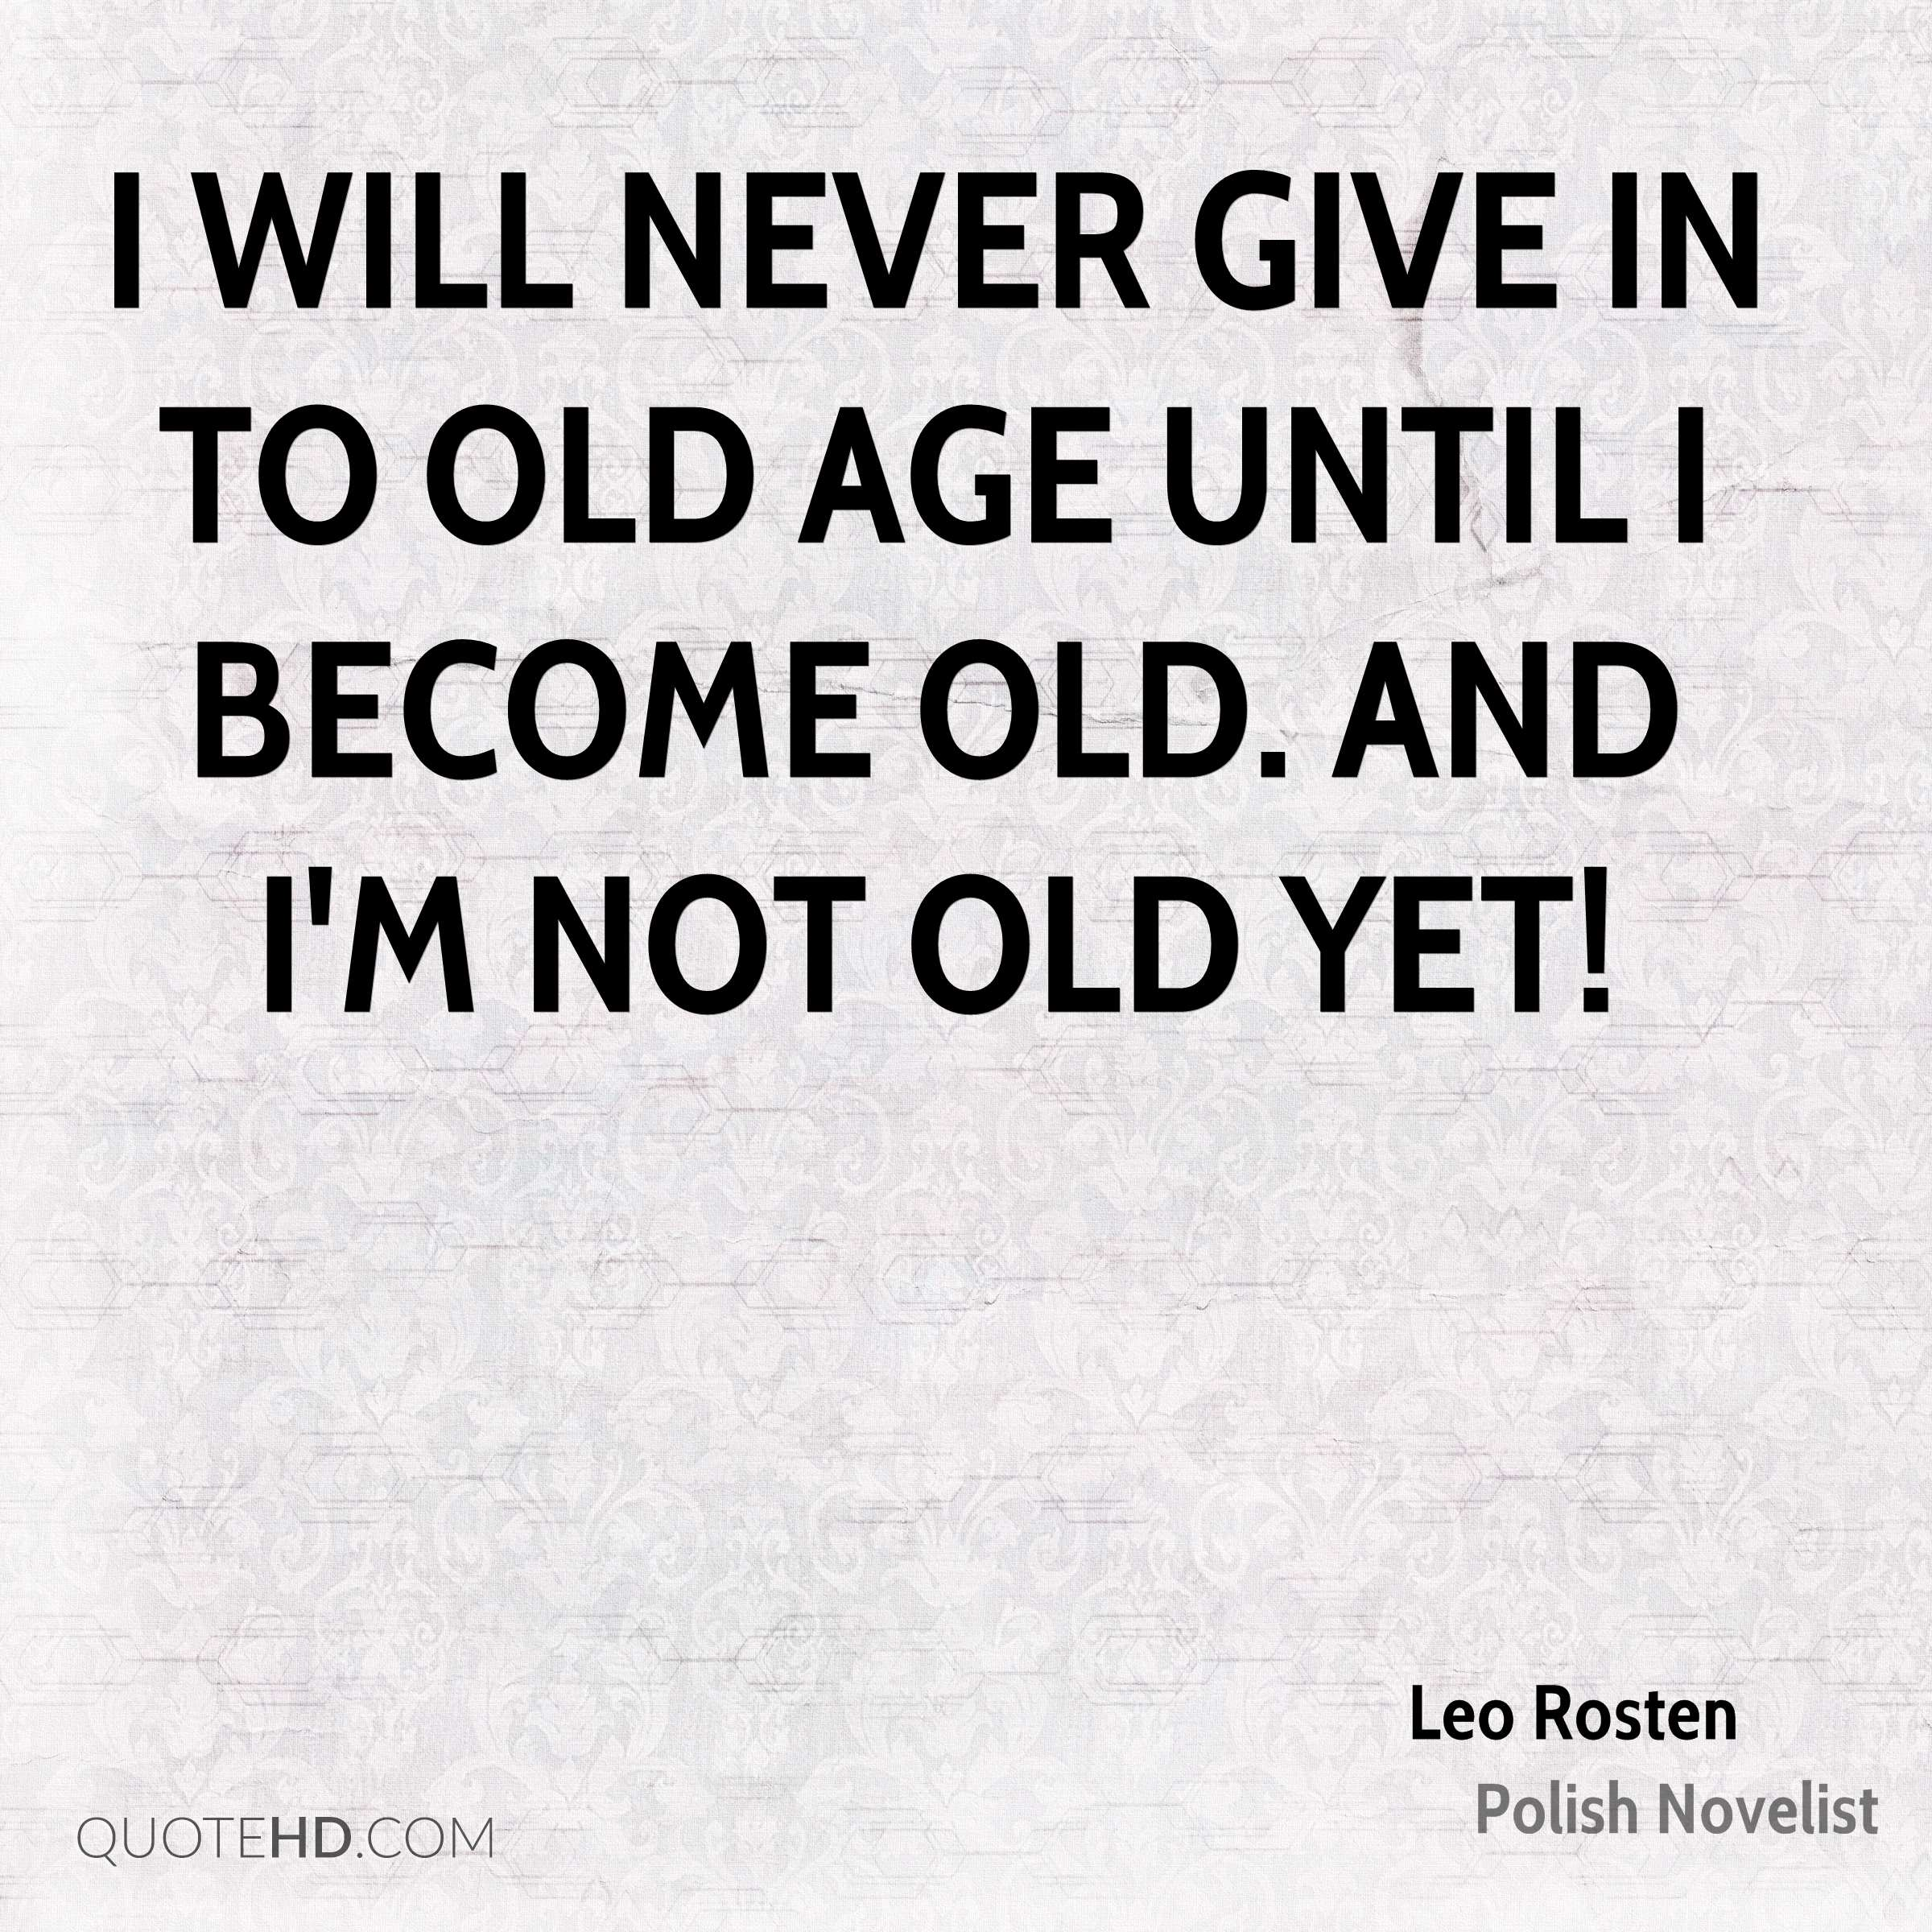 I will never give in to old age until I become old. And I'm not old yet!